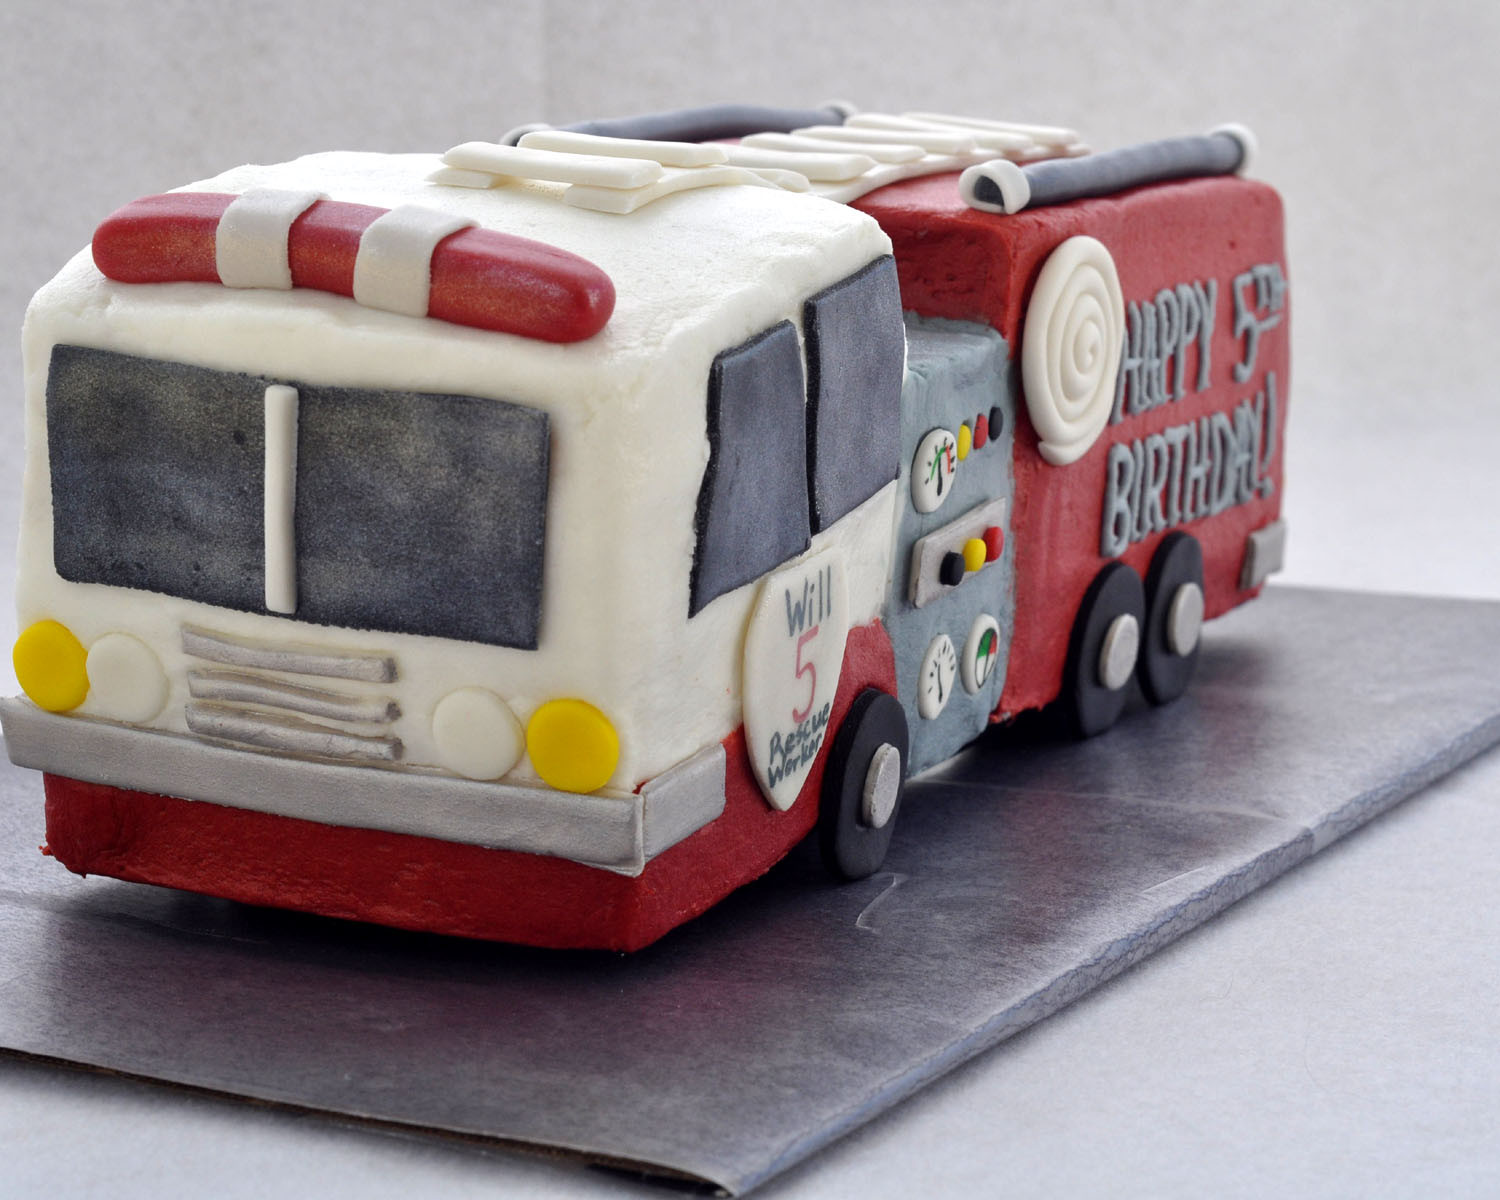 Best ideas about Fire Truck Birthday Cake . Save or Pin Beki Cook s Cake Blog How to Make a Firetruck Cake Now.